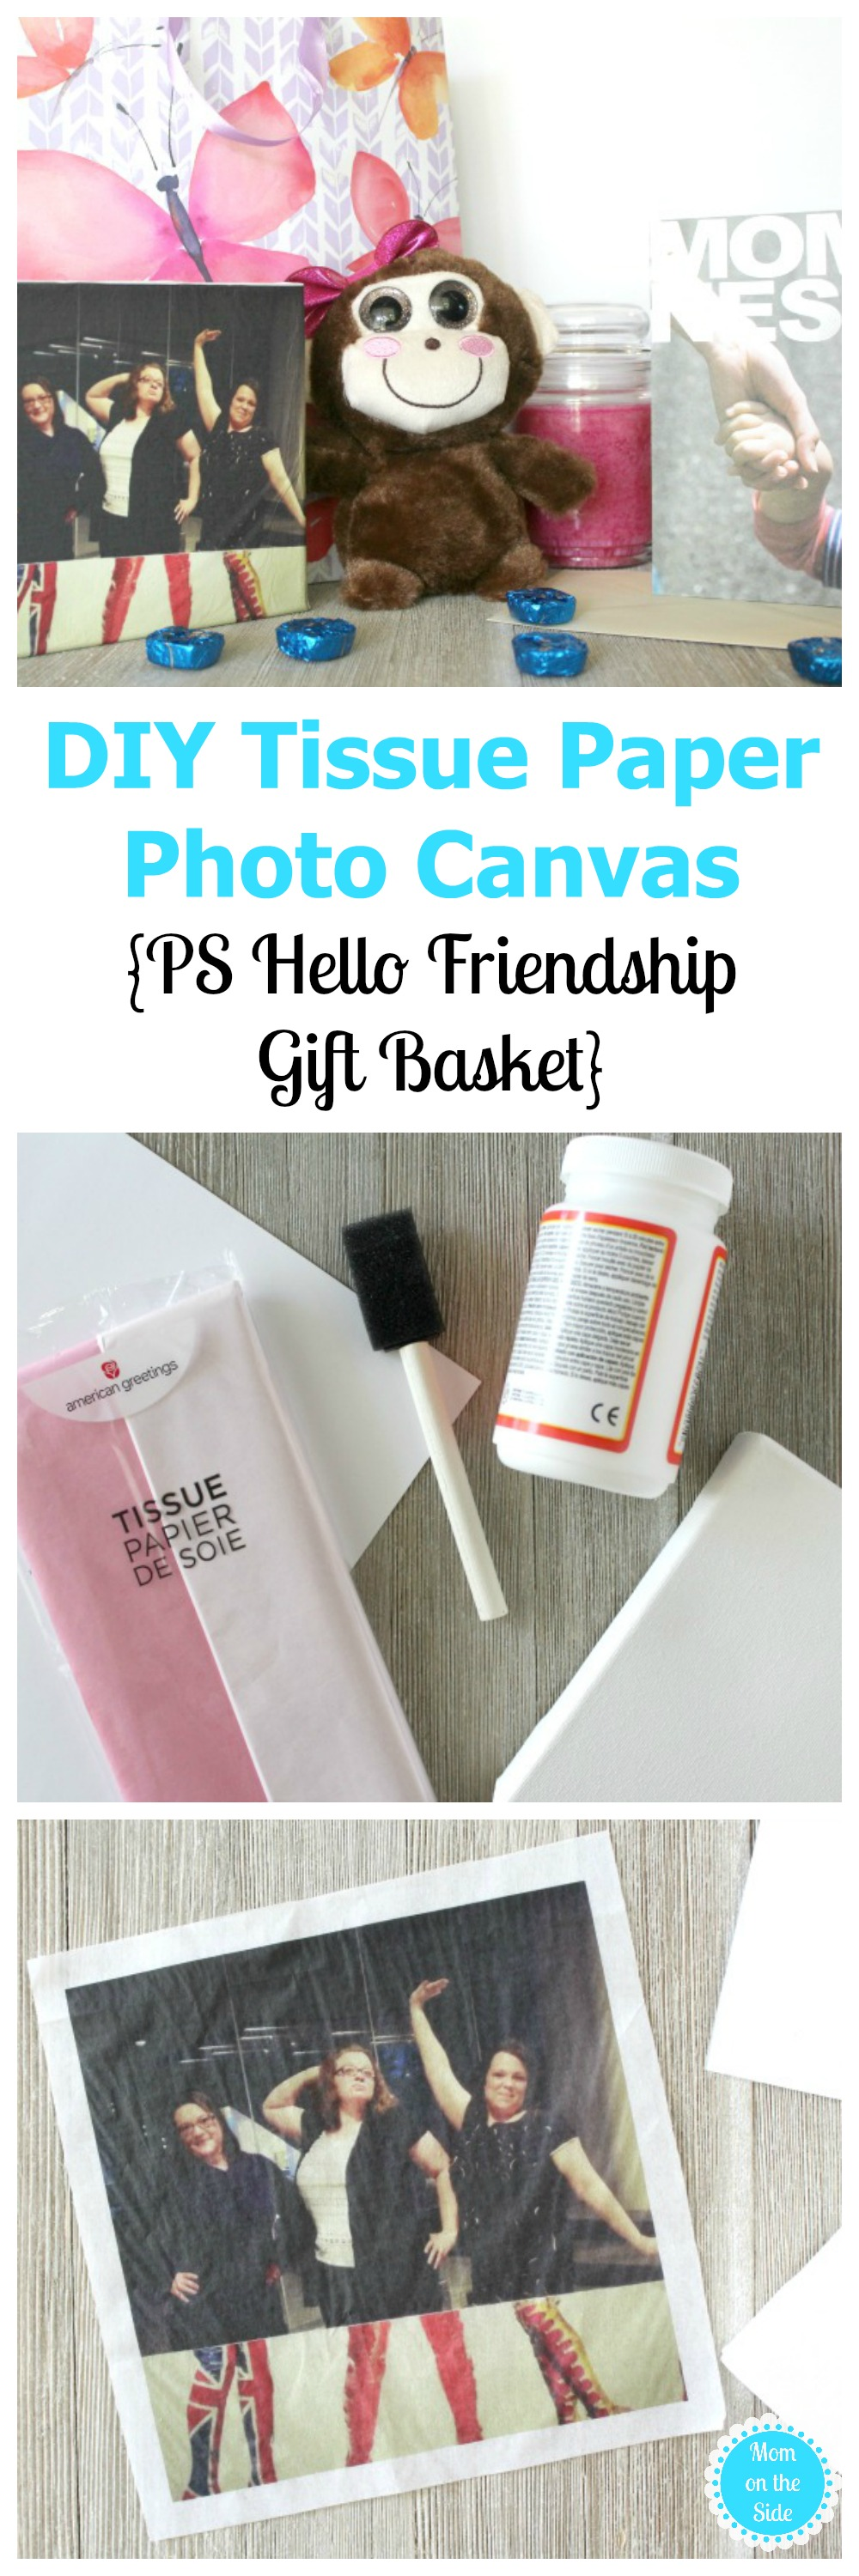 Make a friend (or mom) smile with this PS Hello Friendship Gift Basket and DIY Tissue Paper Photo Canvas.